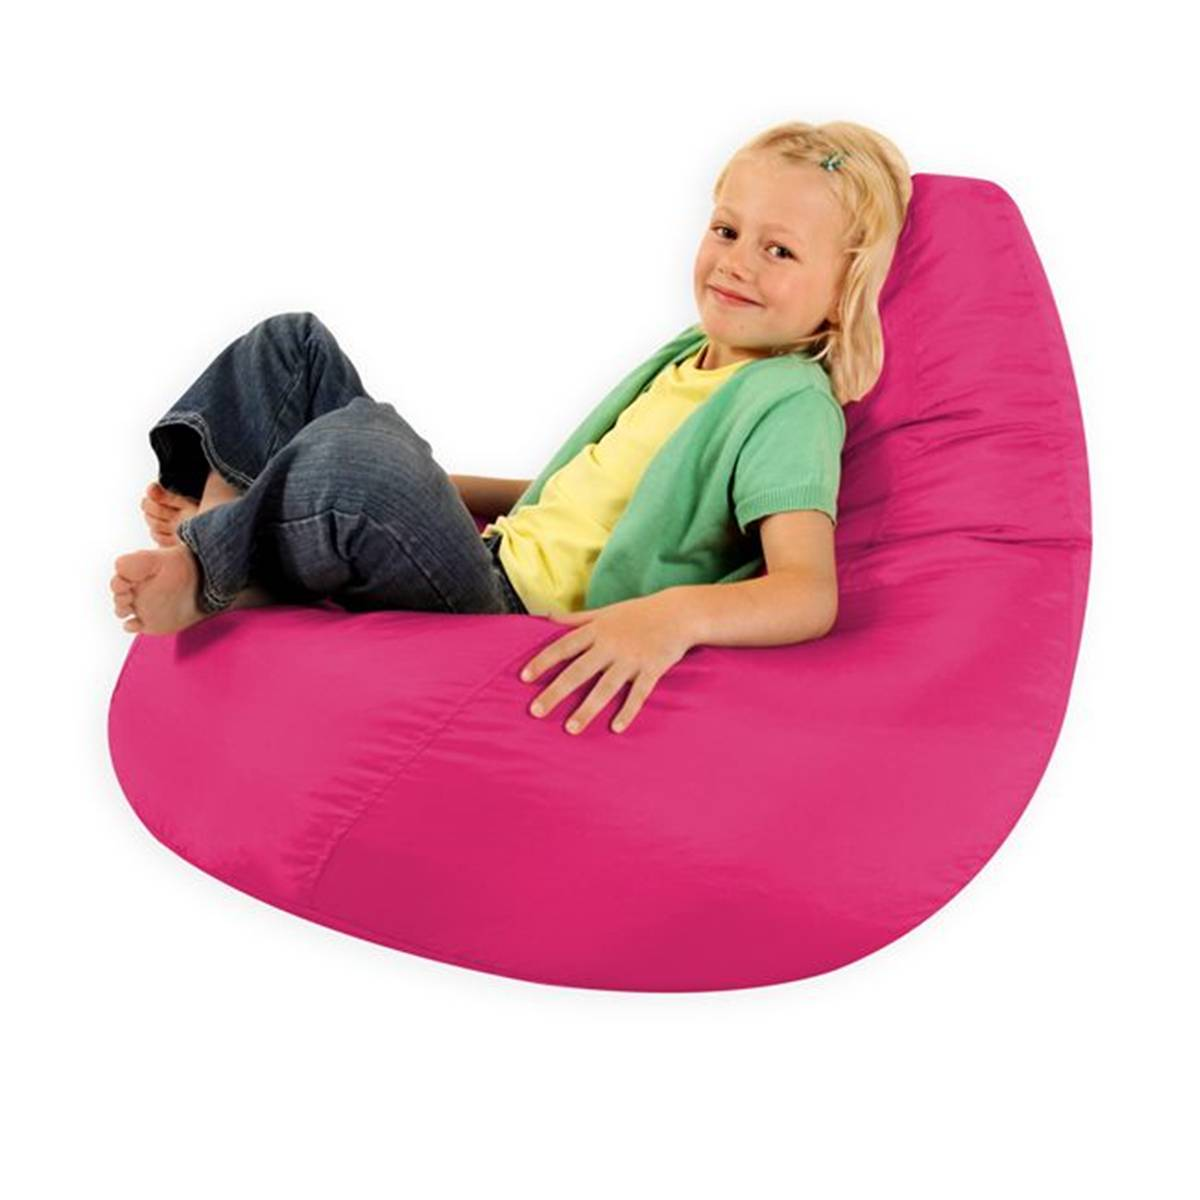 Kids Bean Bag Sofa Chair Cover Lounger Sofa Ottoman Seat Living Room Furniture Without Filler Beanbag Bed Pouf Puff Couch Tatami